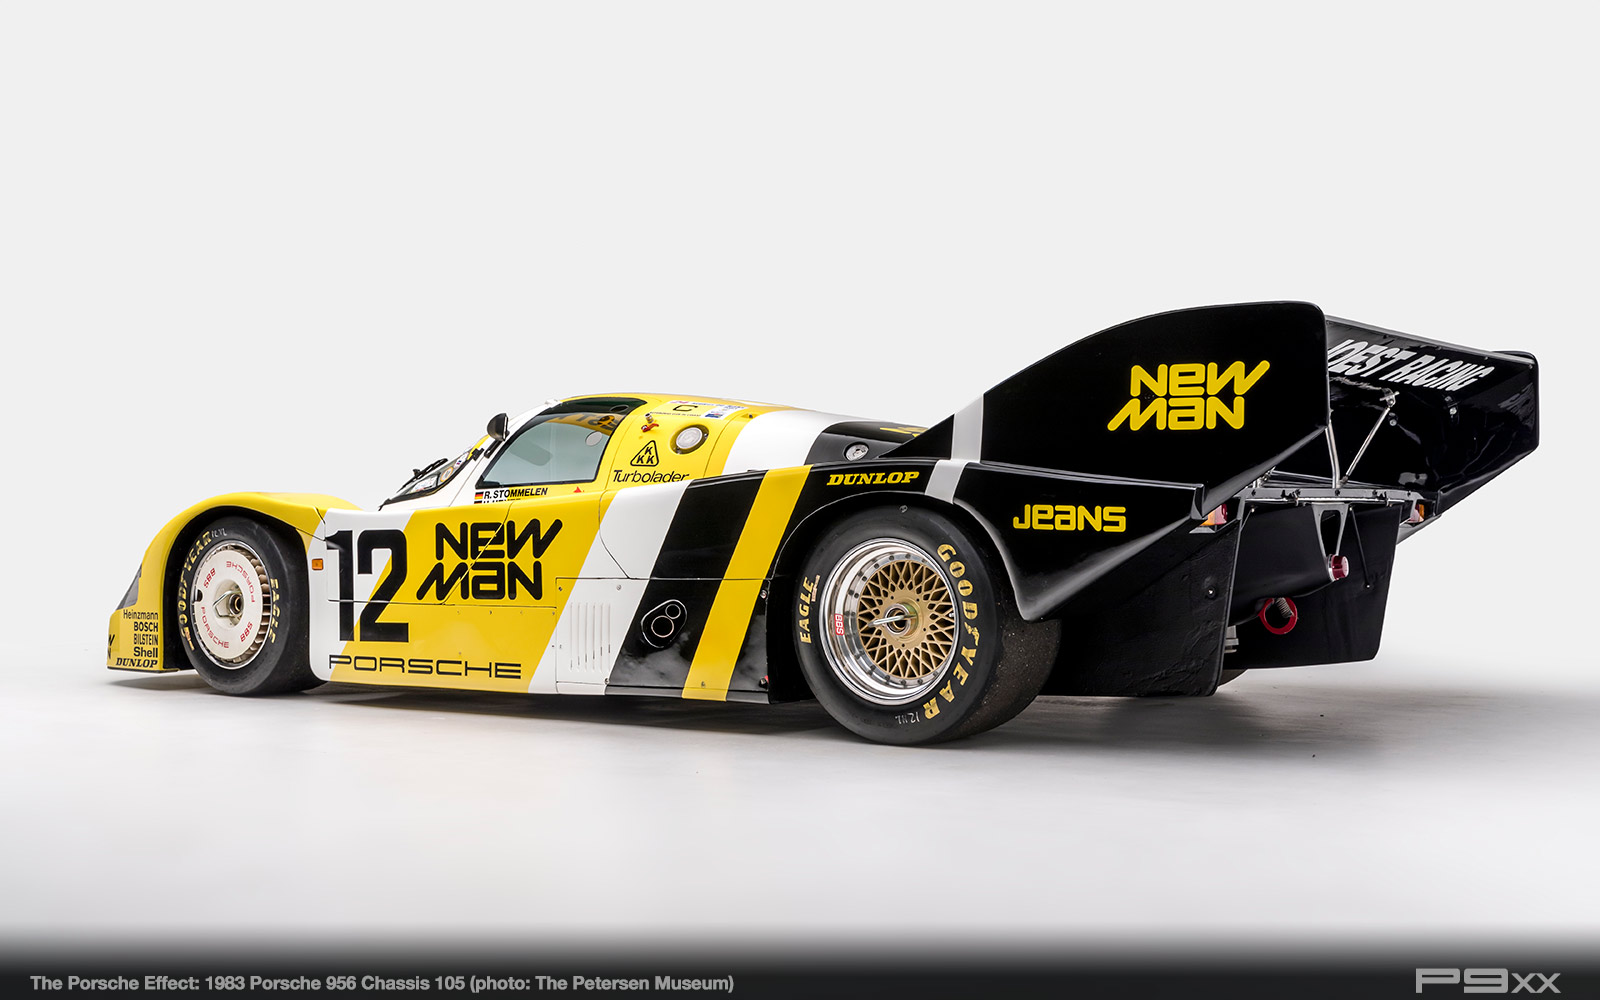 1983-956-Chassis-105-Petersen-Automotive-Museum-The-Porsche-Effect-418